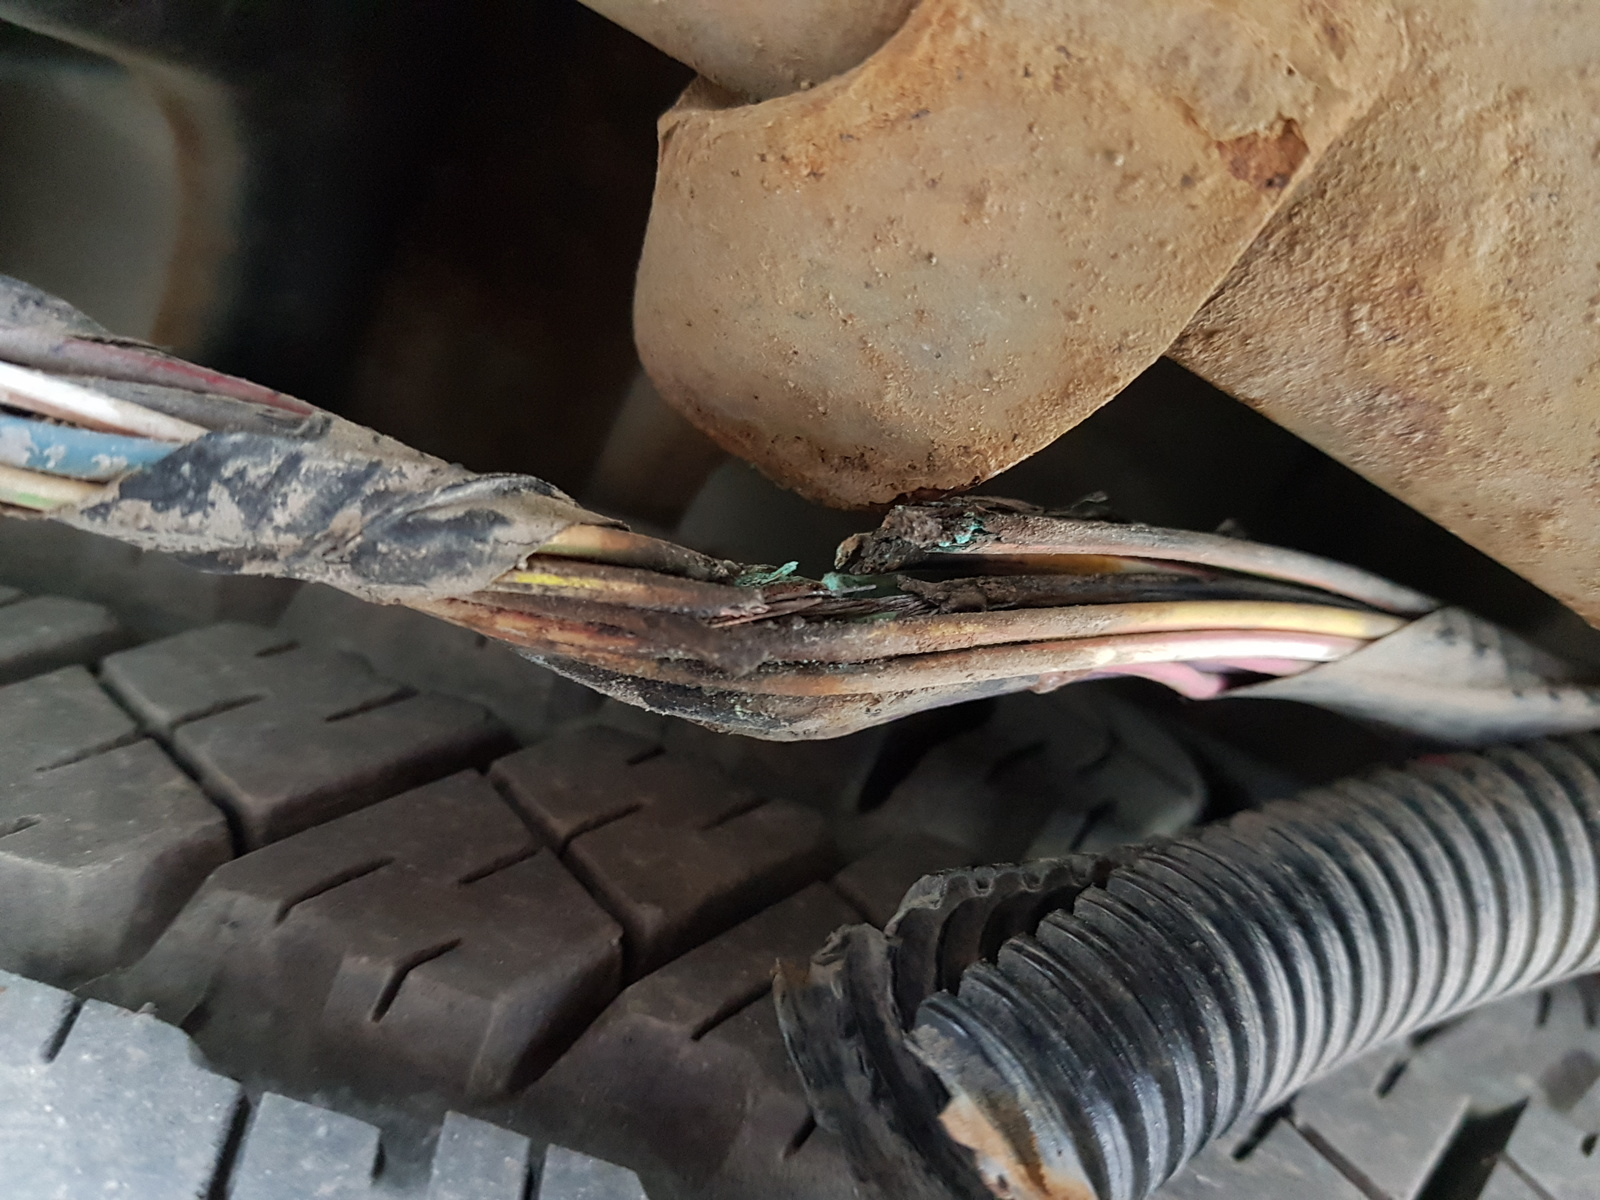 I was lucky that the constant shorting did not cause issues with the  computer. Others may not be so lucky. This is a major design flaw, check  your trucks.